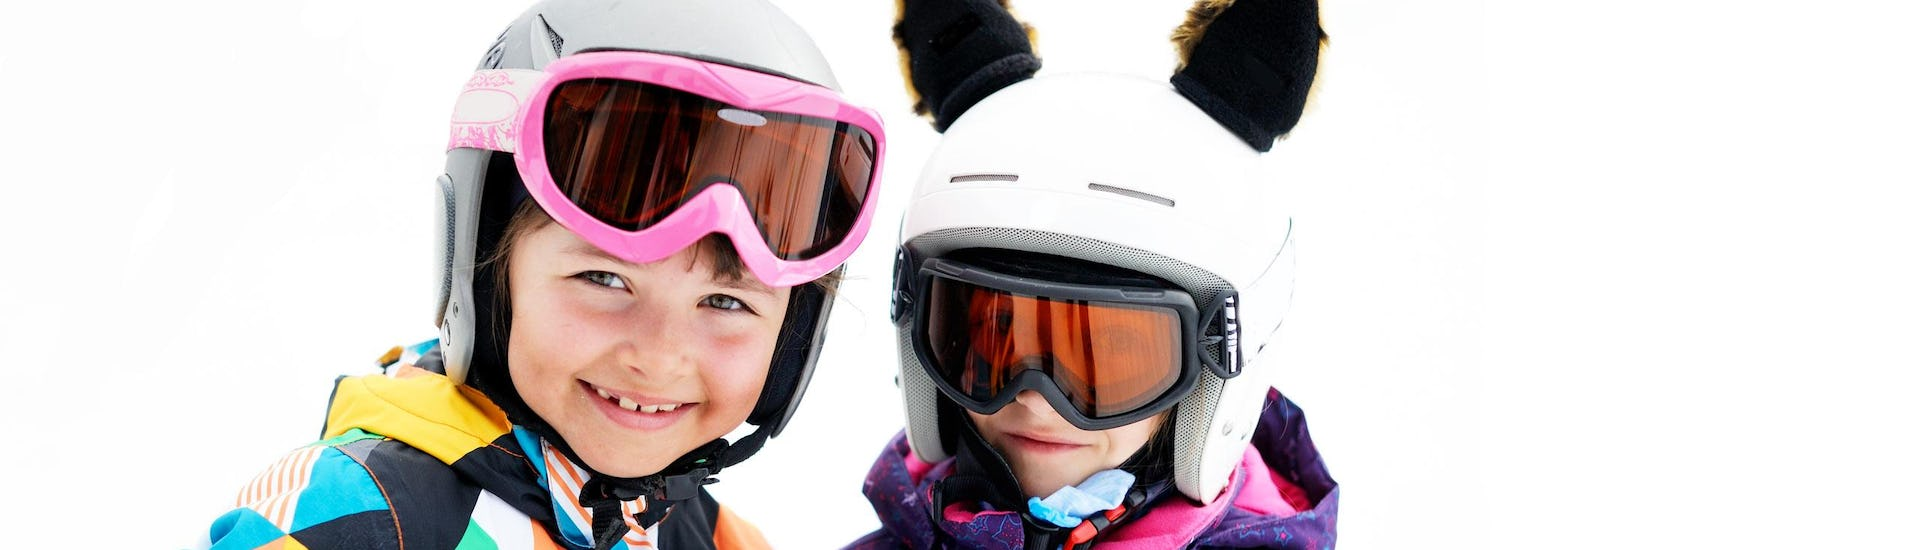 Two young children smiling at the camera during one of the Kids Ski Lessons (6-12 years) - Max 5 - Crans - All Levels organised by Swiss Mountain Sports.